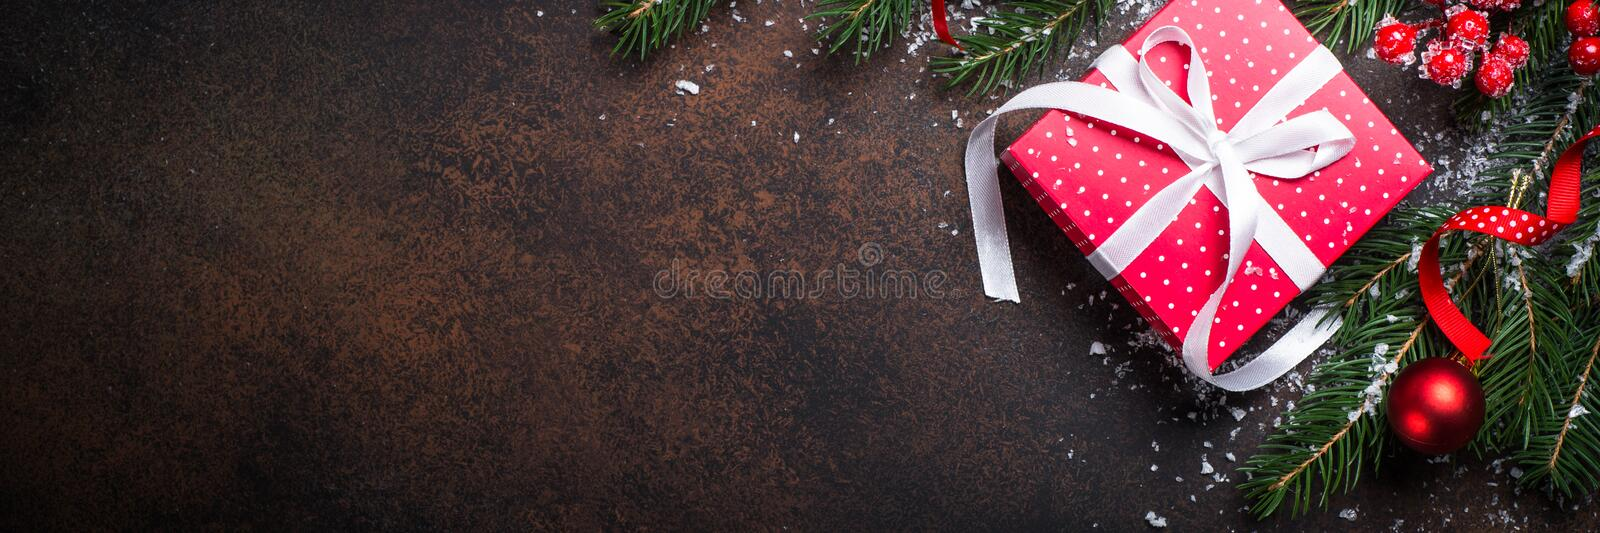 Christmas red present box on dark background. royalty free stock images